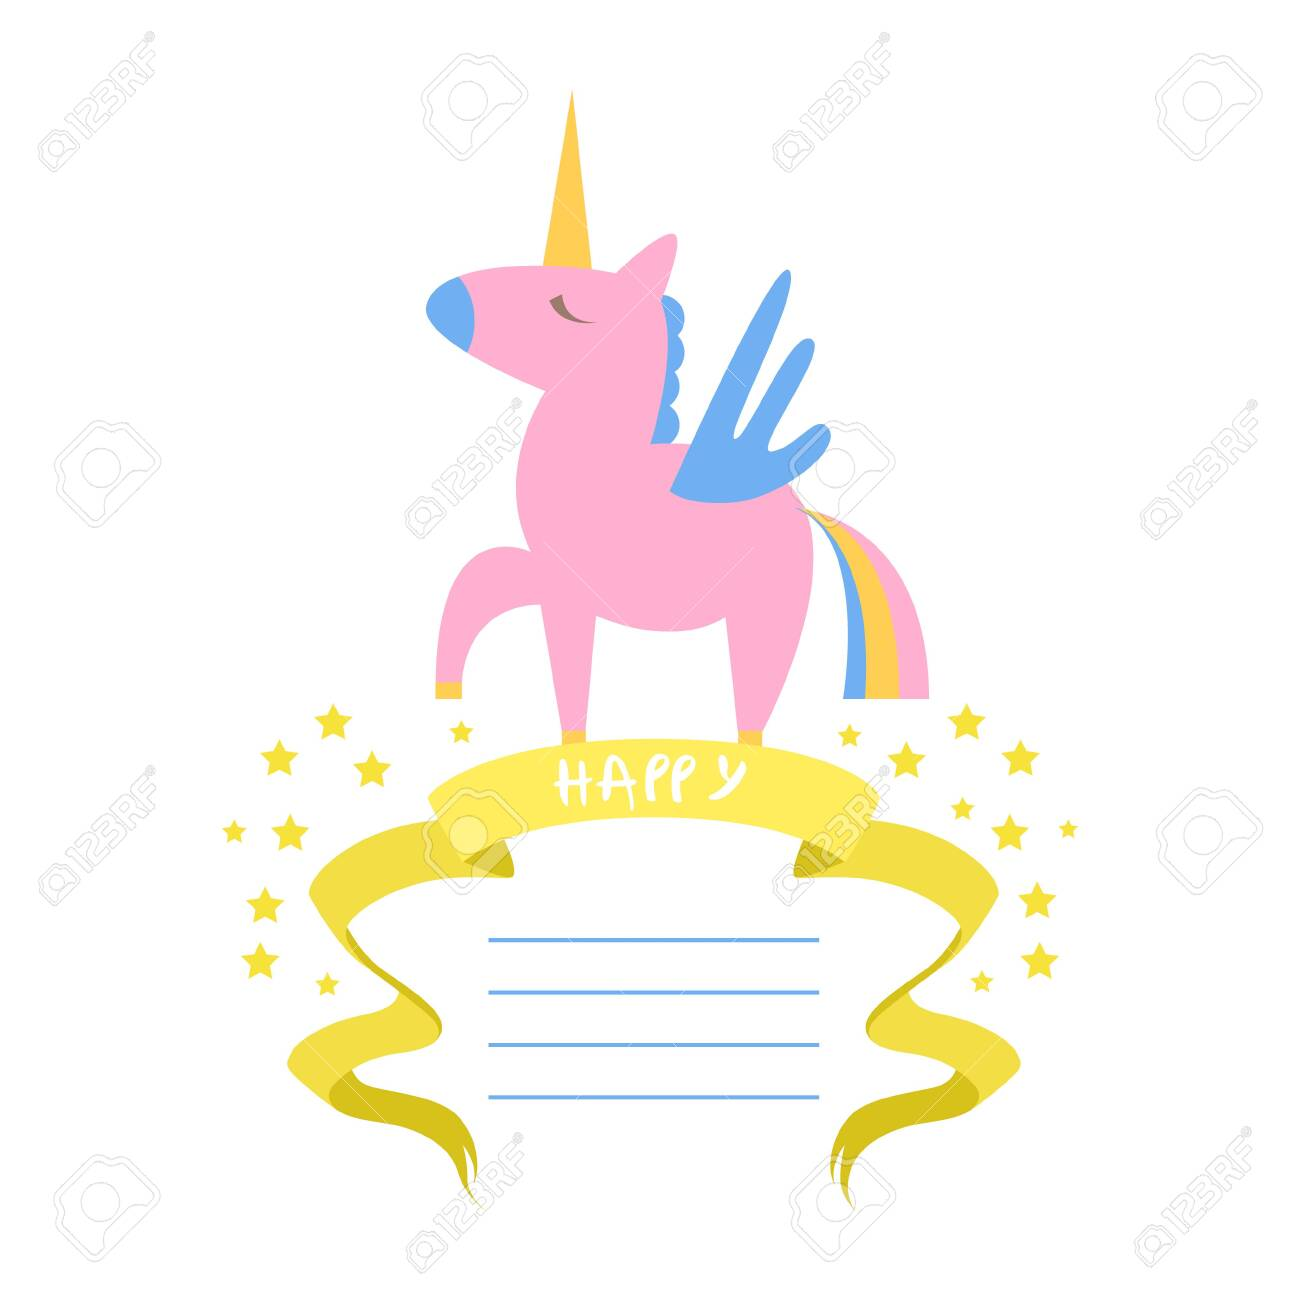 beautiful unicorn card template with place for text birthday